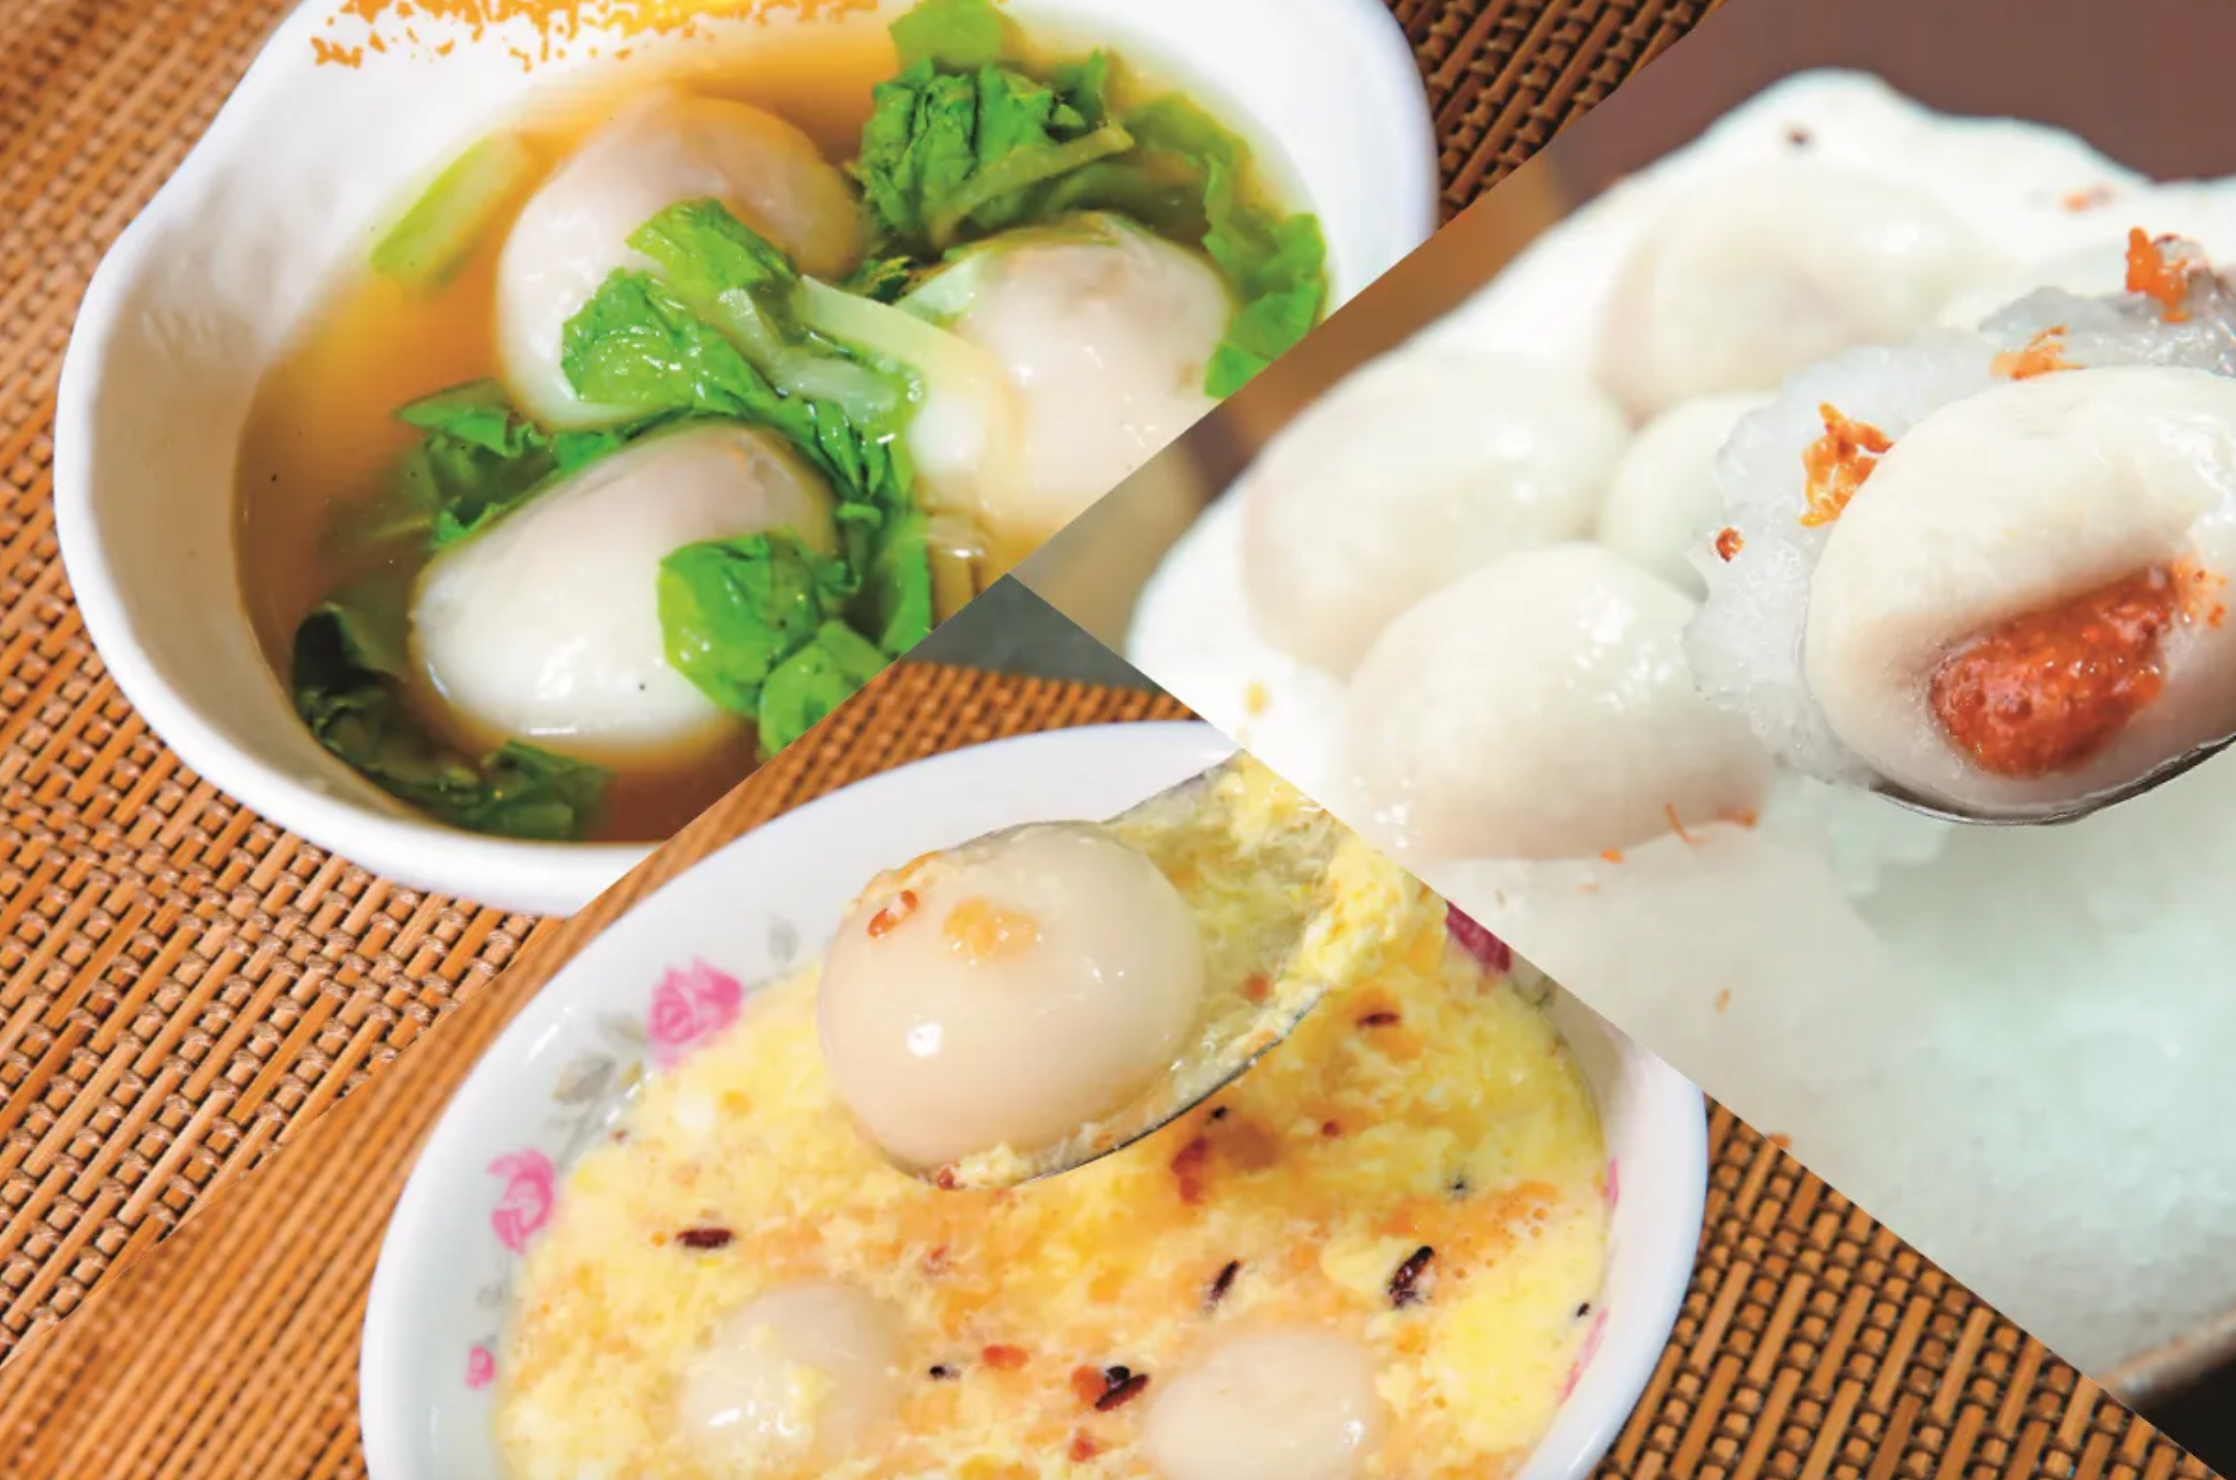 Tangyuan Fun as the Typical Traditional Food of Chinese Lantern Festival